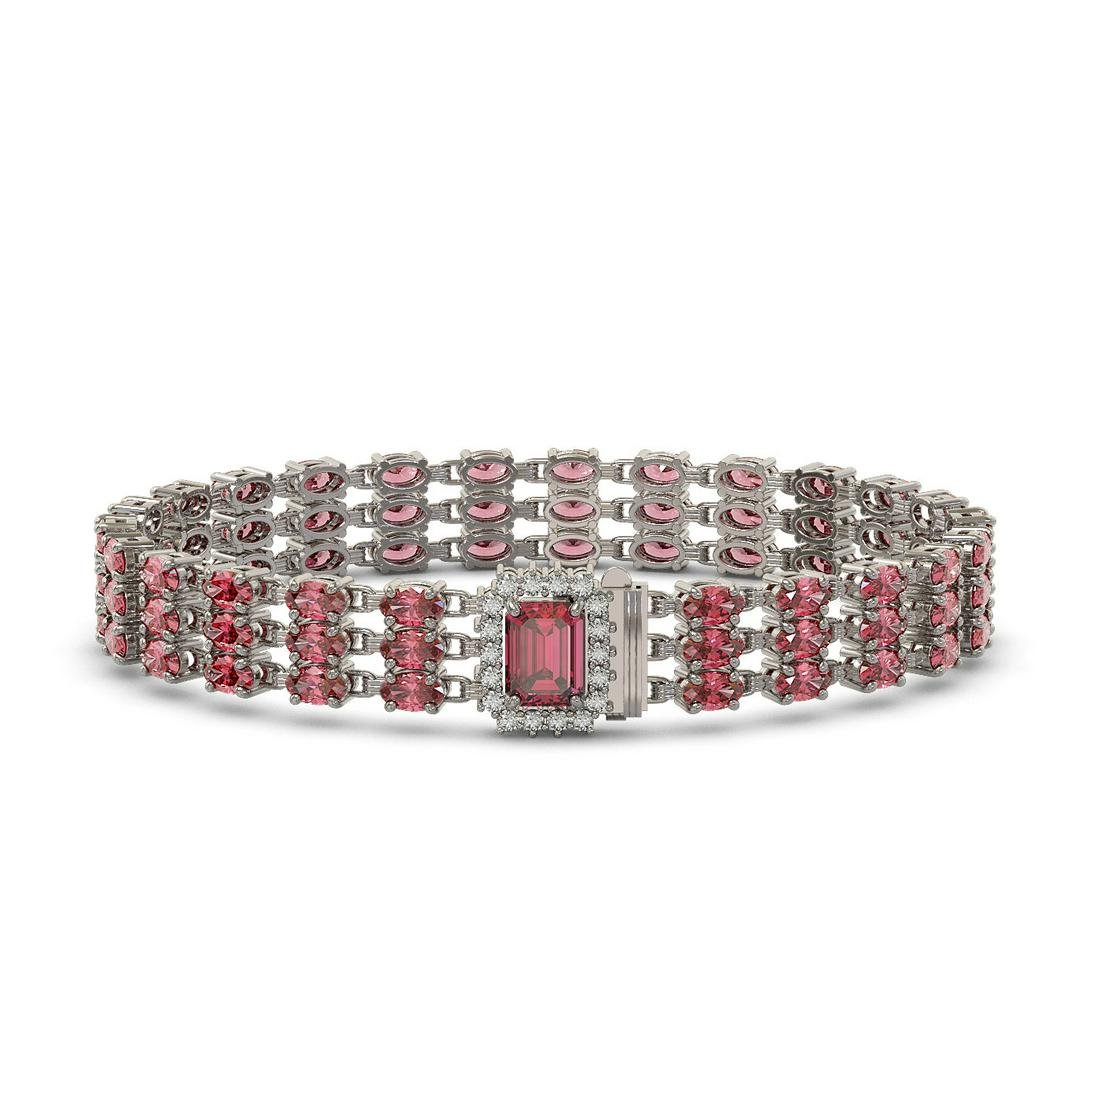 25.49 ctw Tourmaline & Diamond Bracelet 14K White Gold